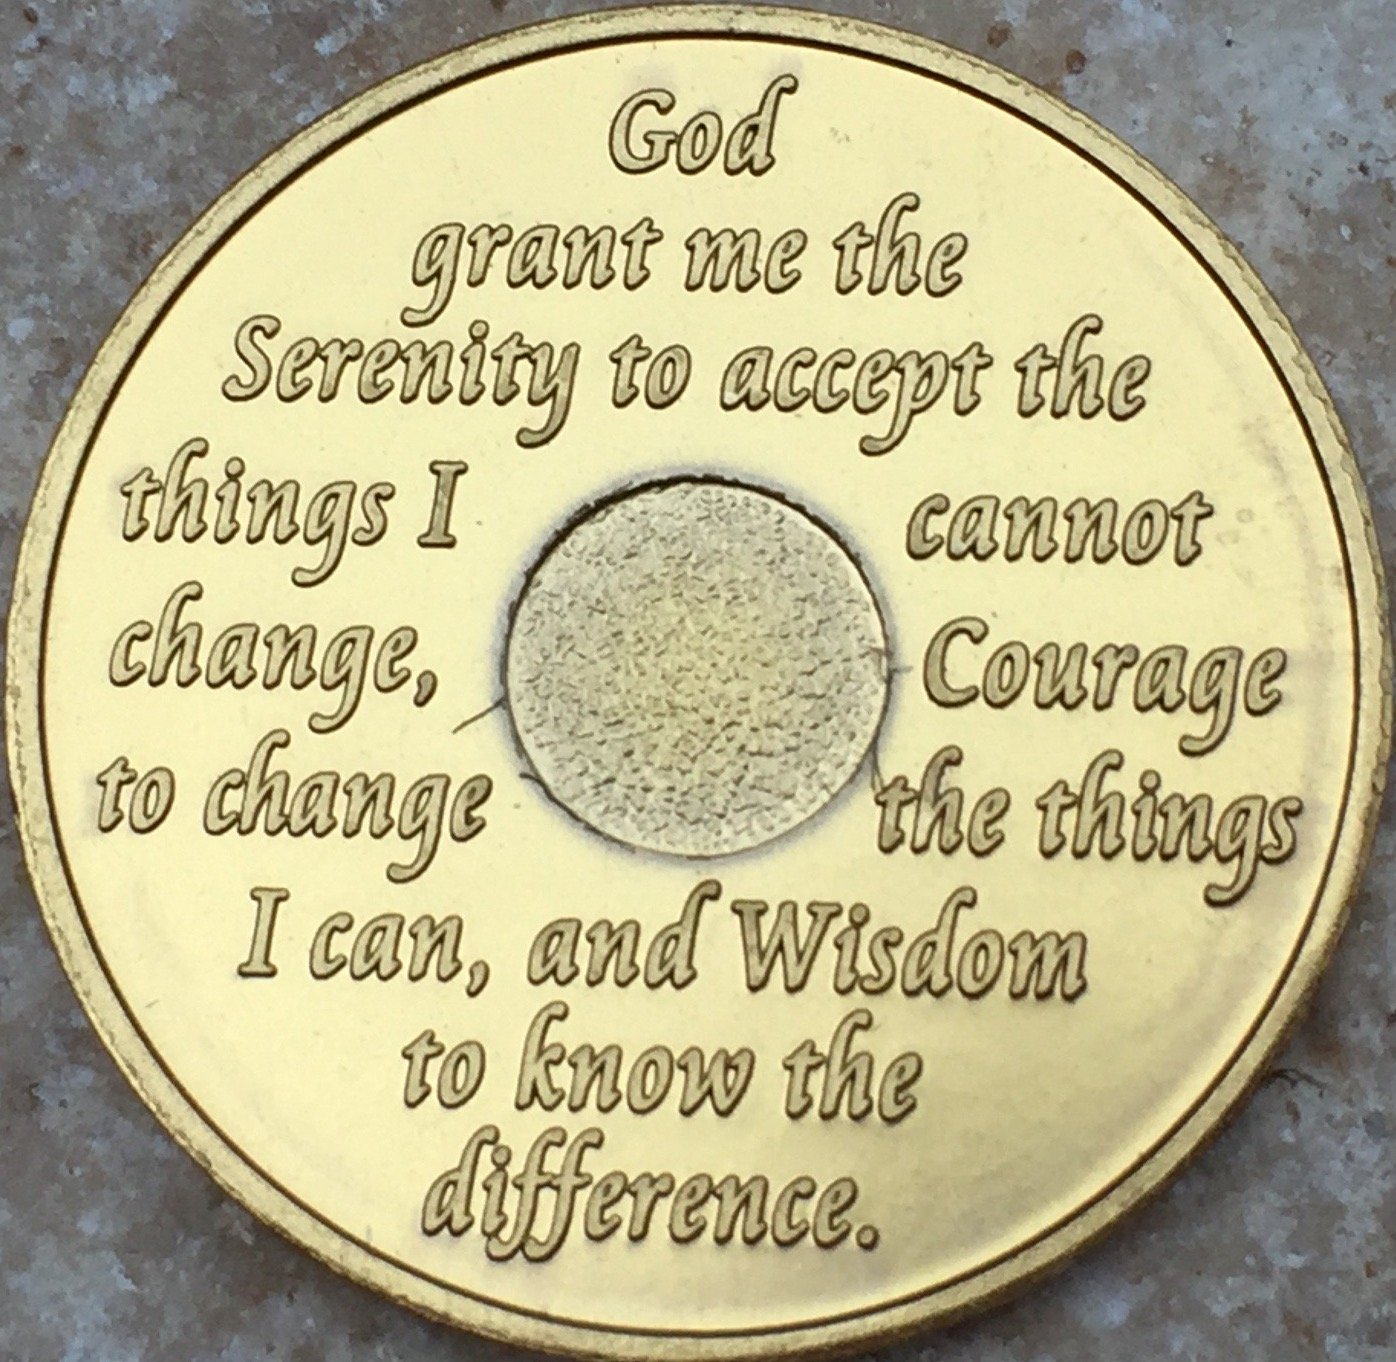 39 Year AA Medallion Green Gold Plated Anniversary Chip With Serenity Prayer